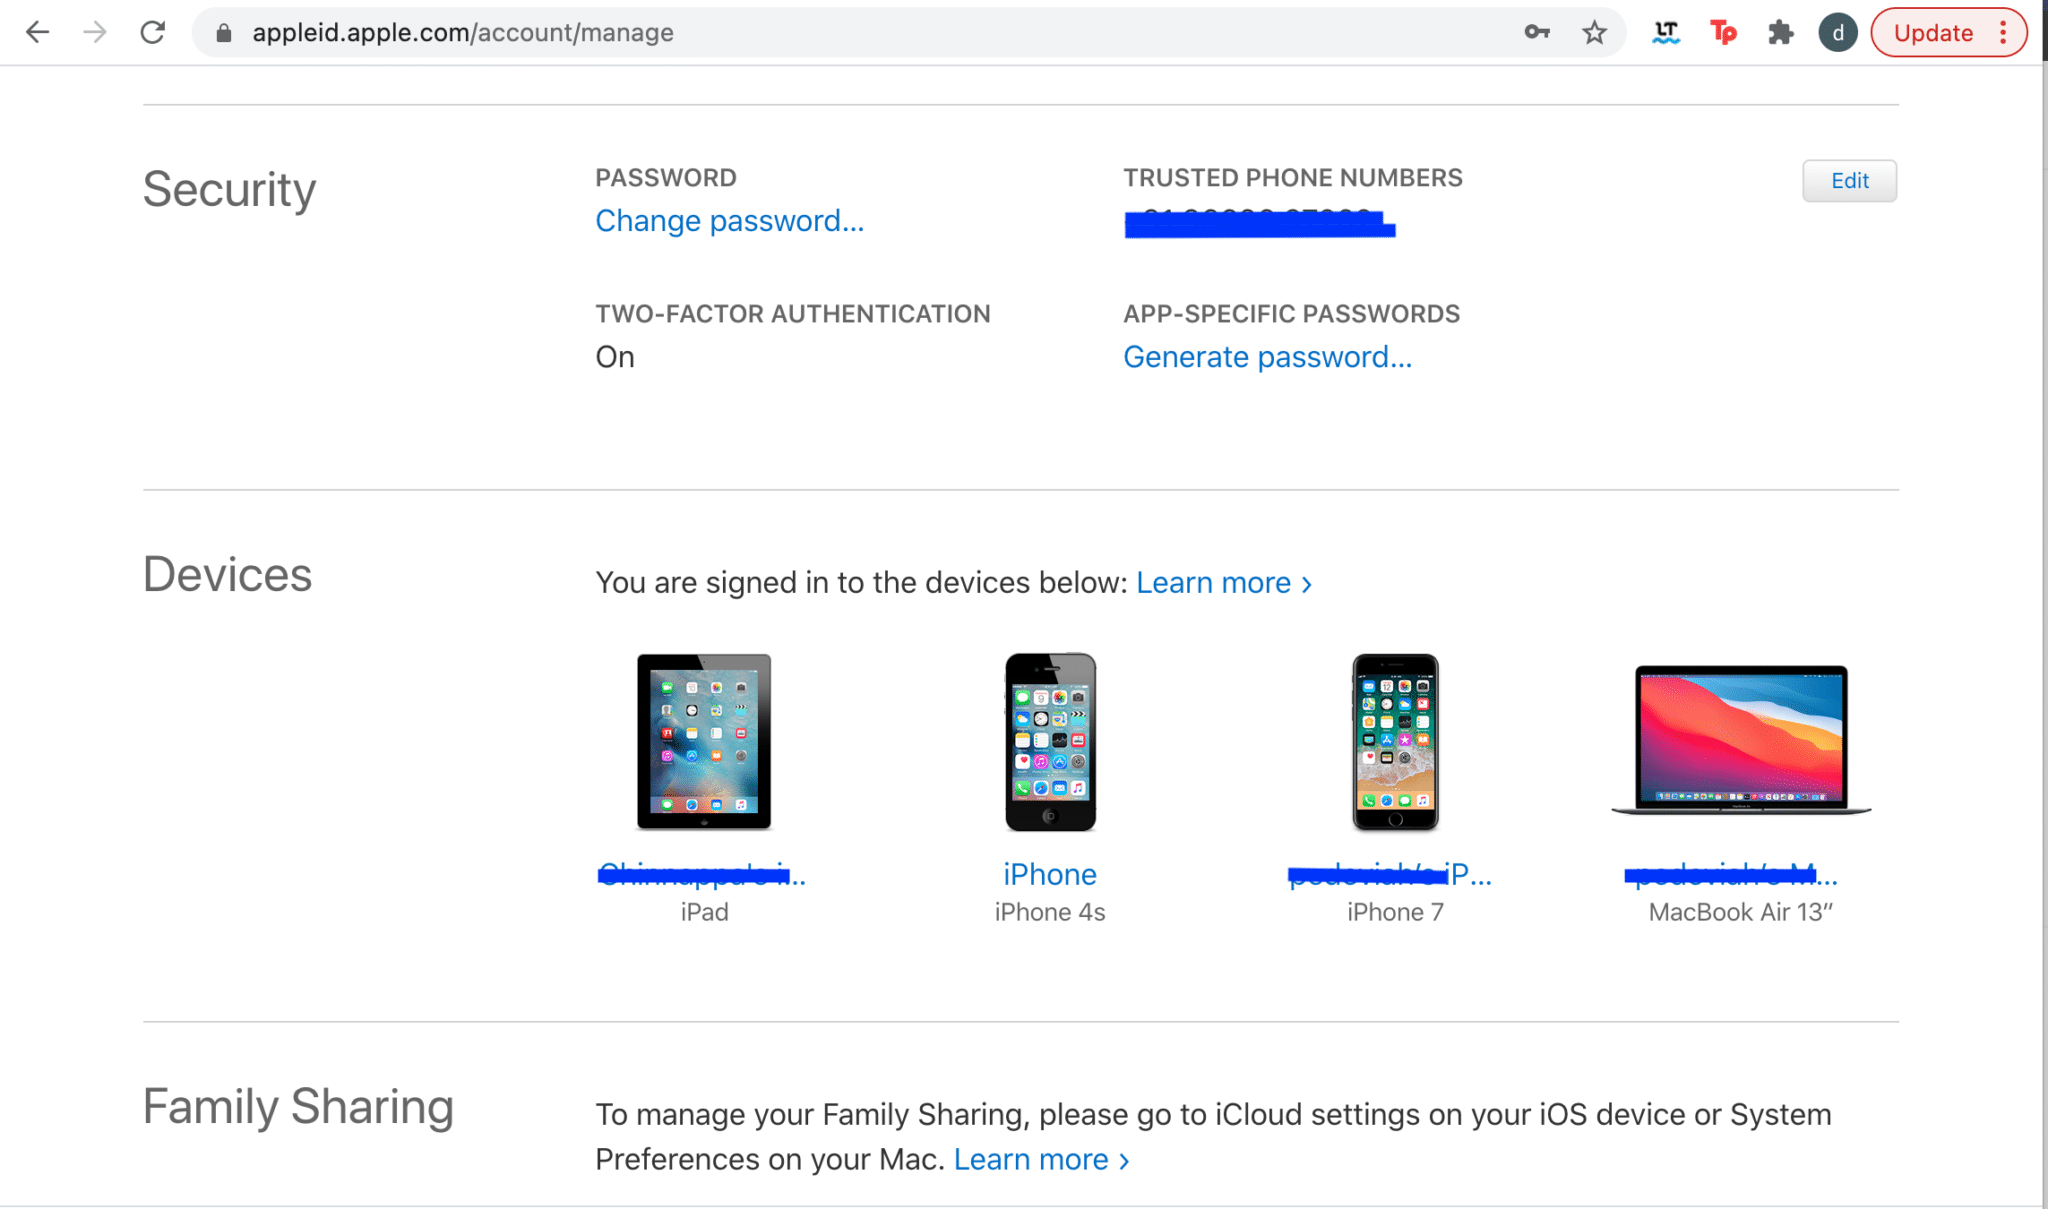 Select the desired device under the Devices section to check the serial number. Apple service and support coverage